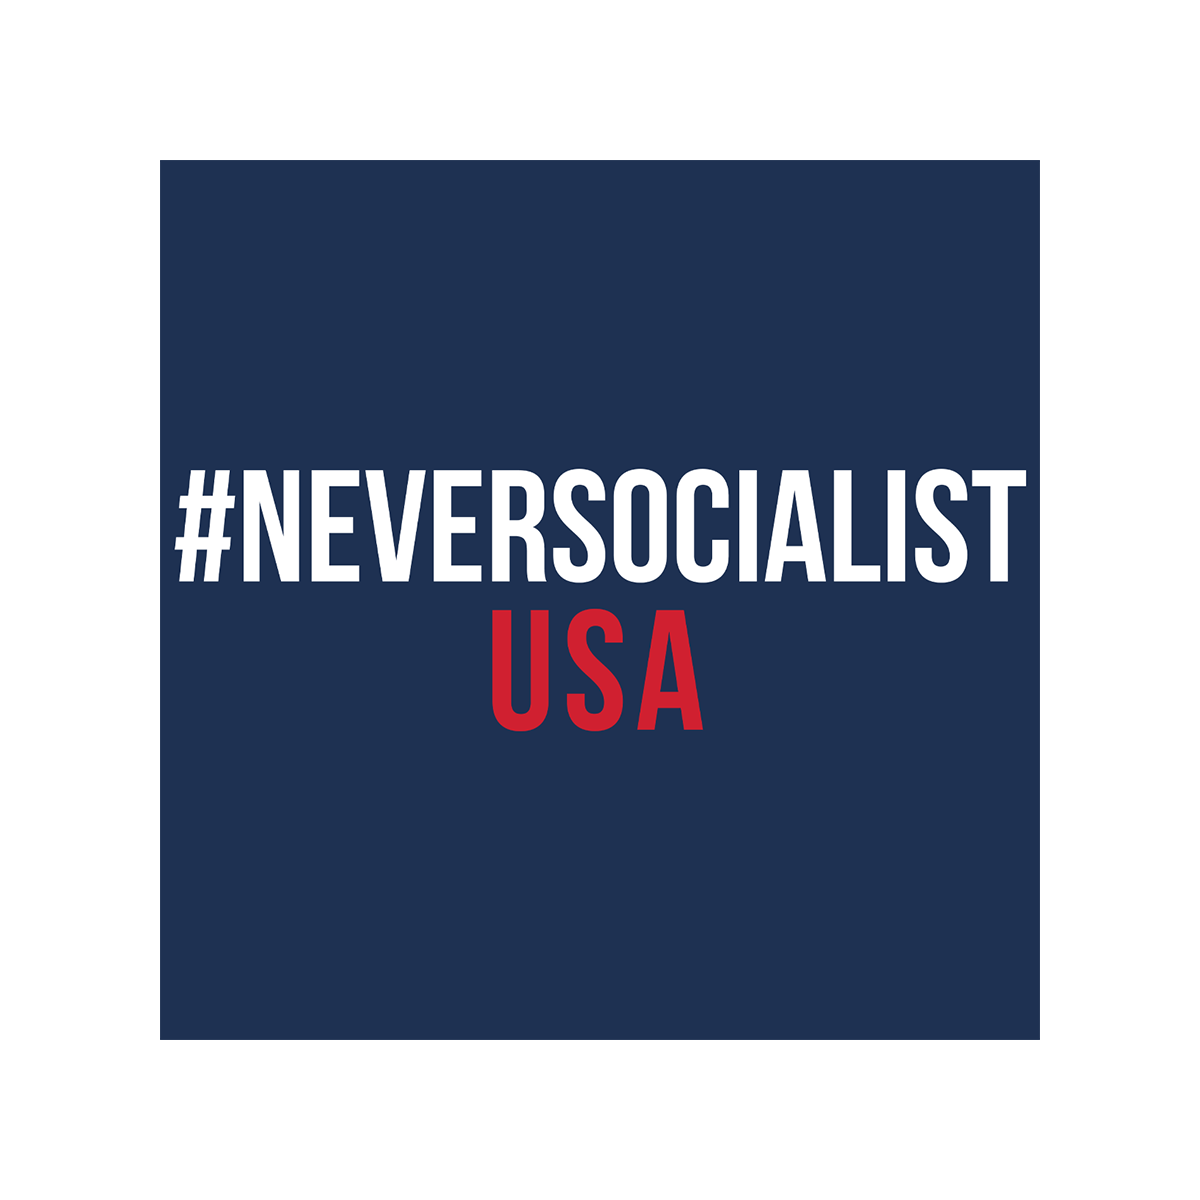 #NeverSocialist USA T-Shirt - Navy